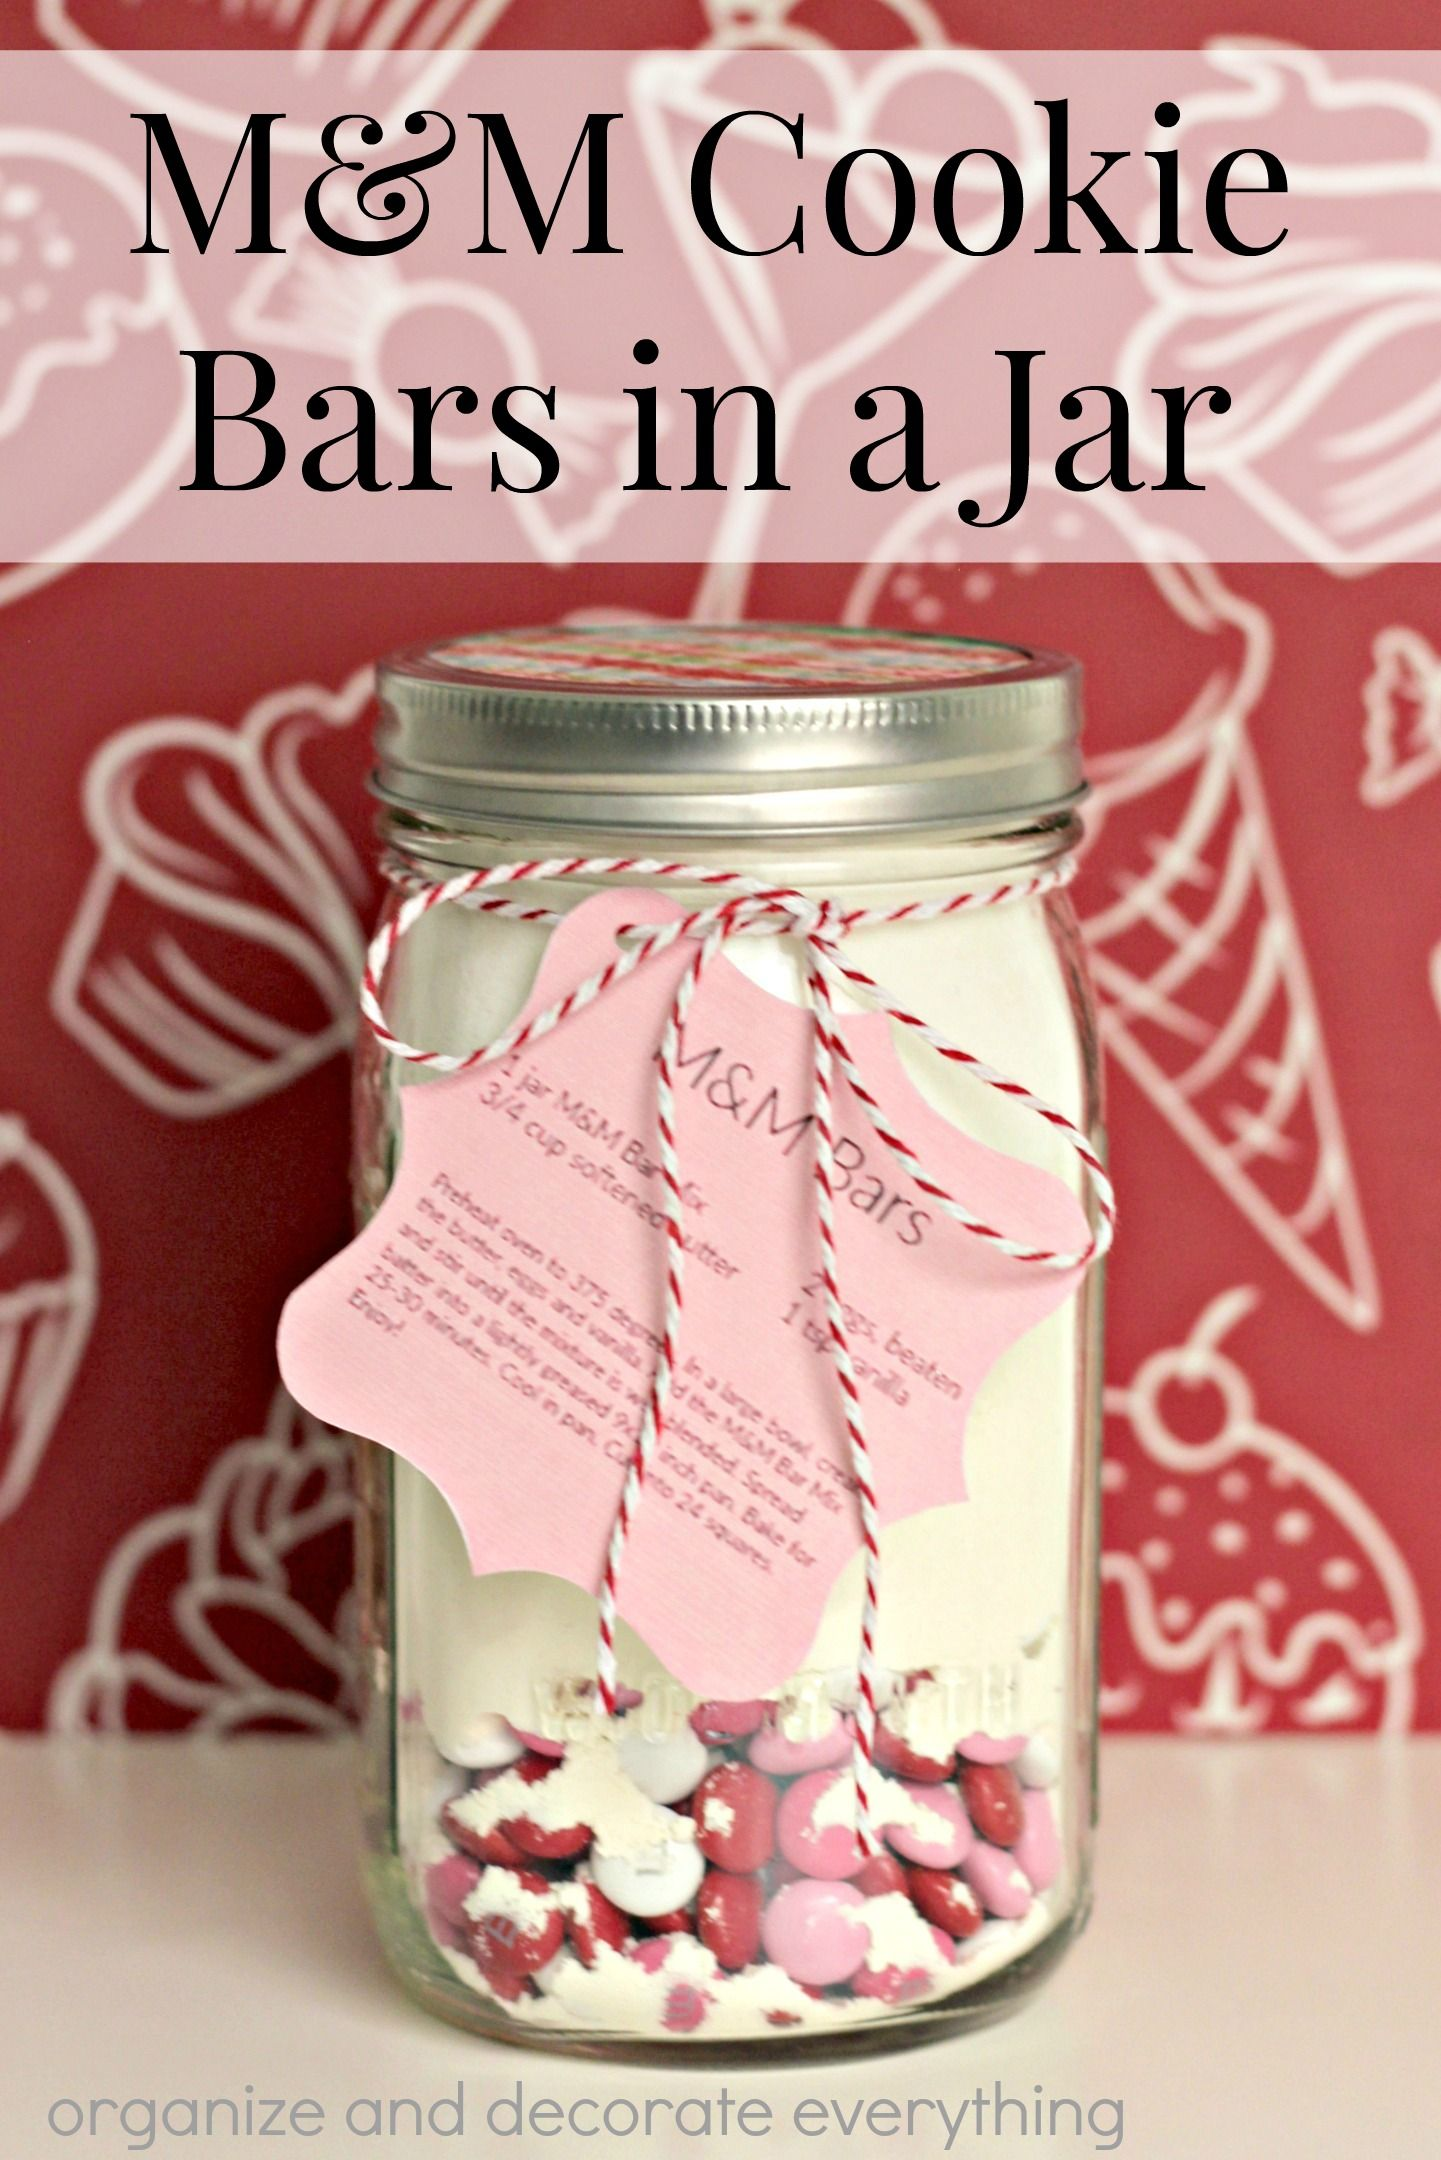 Mum cookie bars in a jar delicious treats pinterest bar